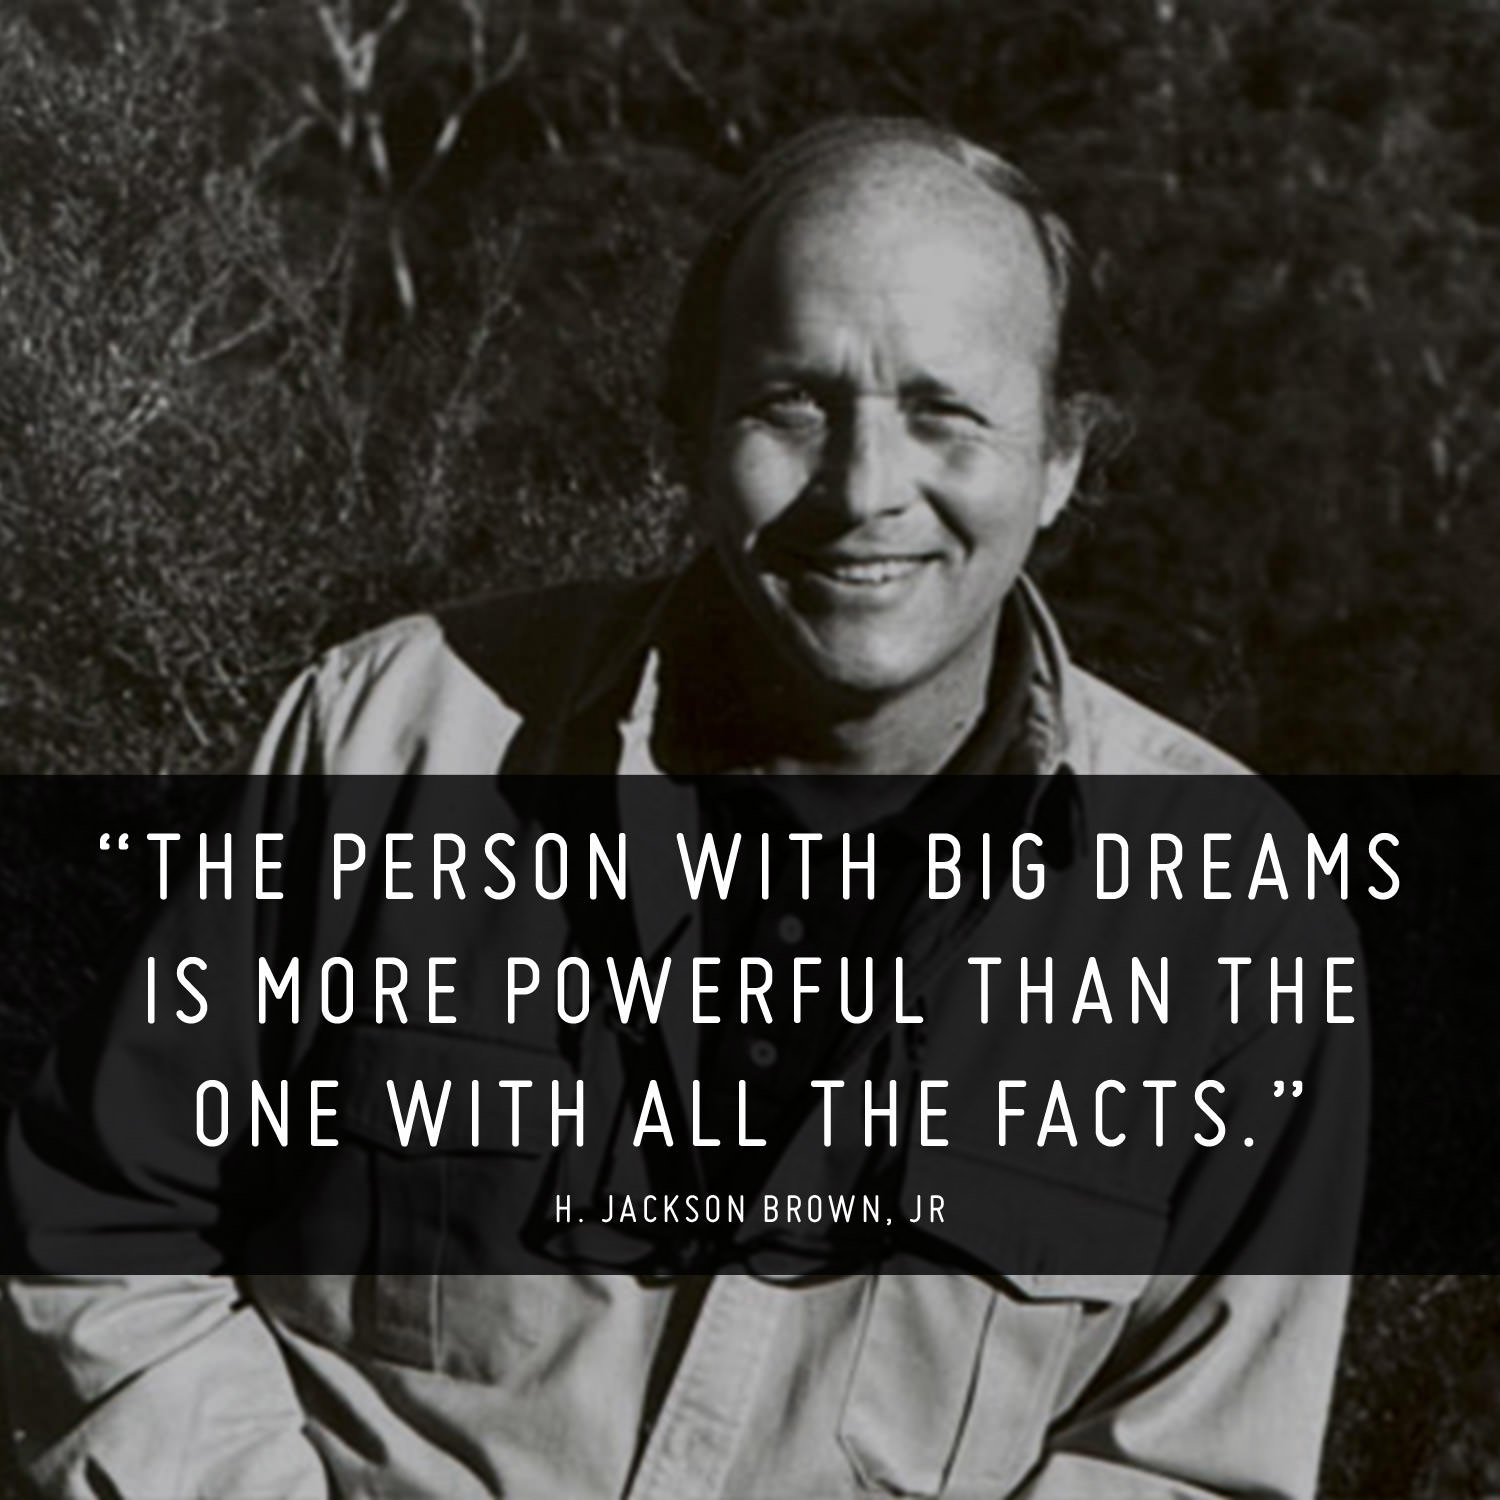 The person with big dreams is more powerful than the one with all the facts. - H. Jackson Brown, Jr.